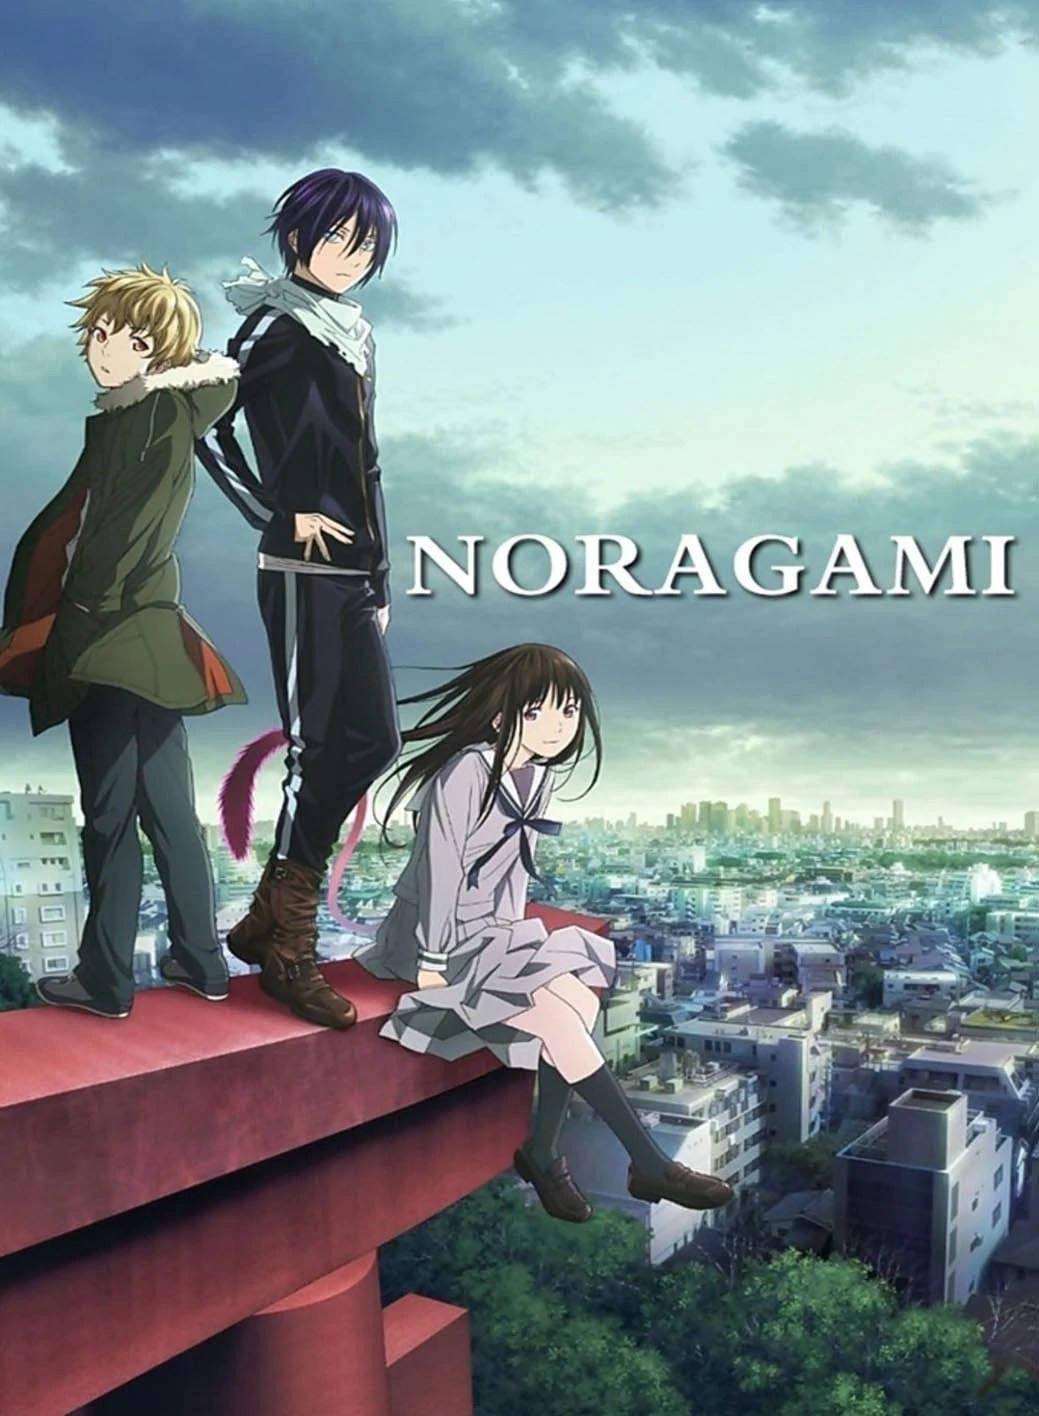 Noragami  Anime VoiceOver Wiki  FANDOM powered by Wikia